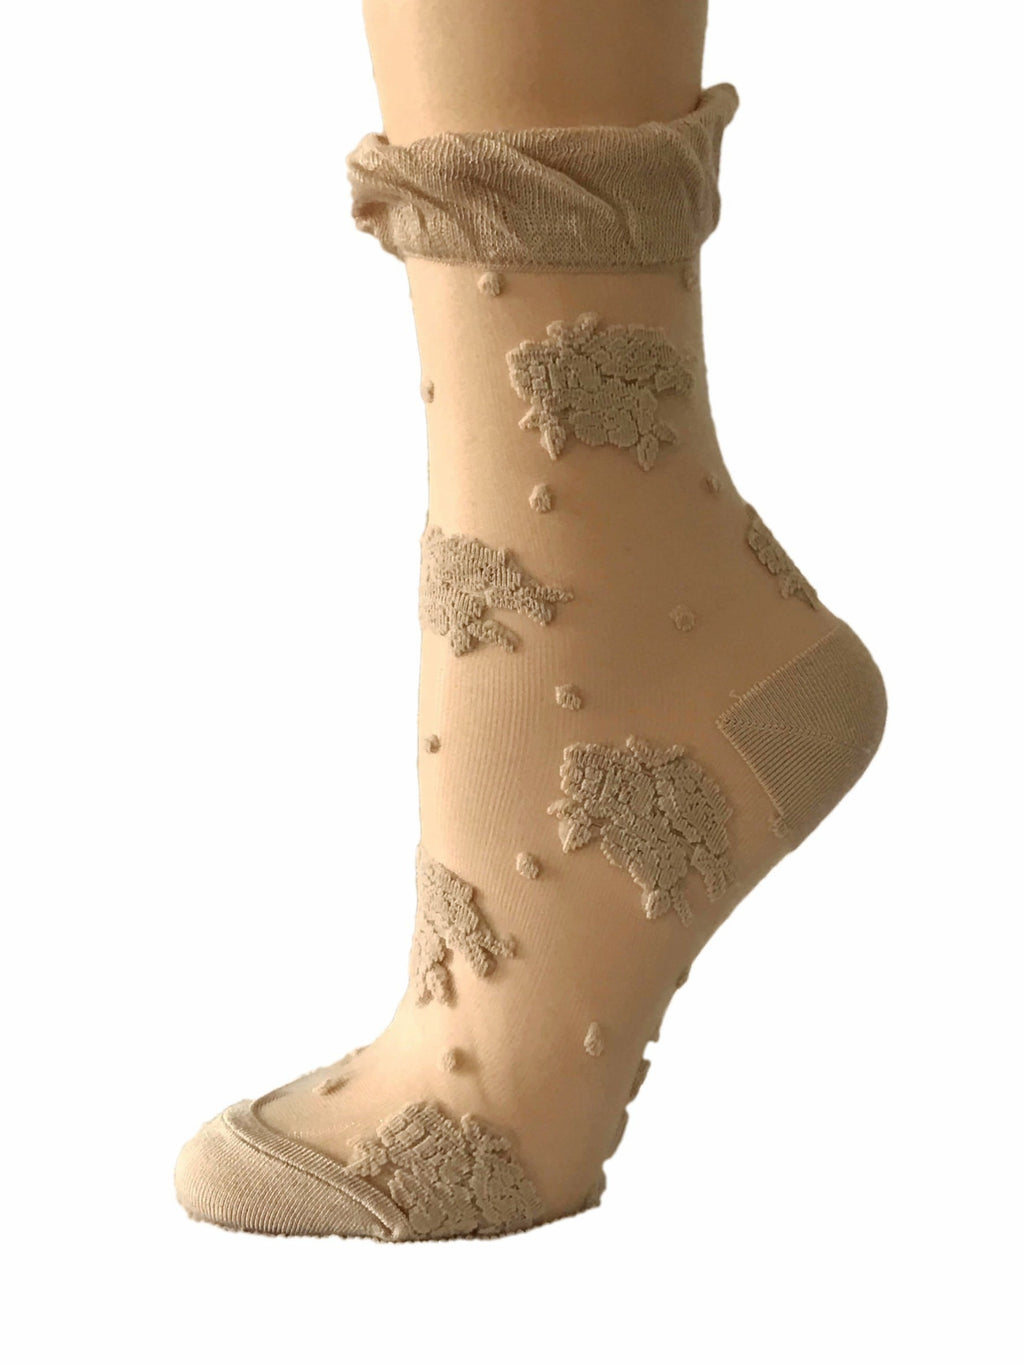 Posh Beige Sheer Socks - Global Trendz Fashion®